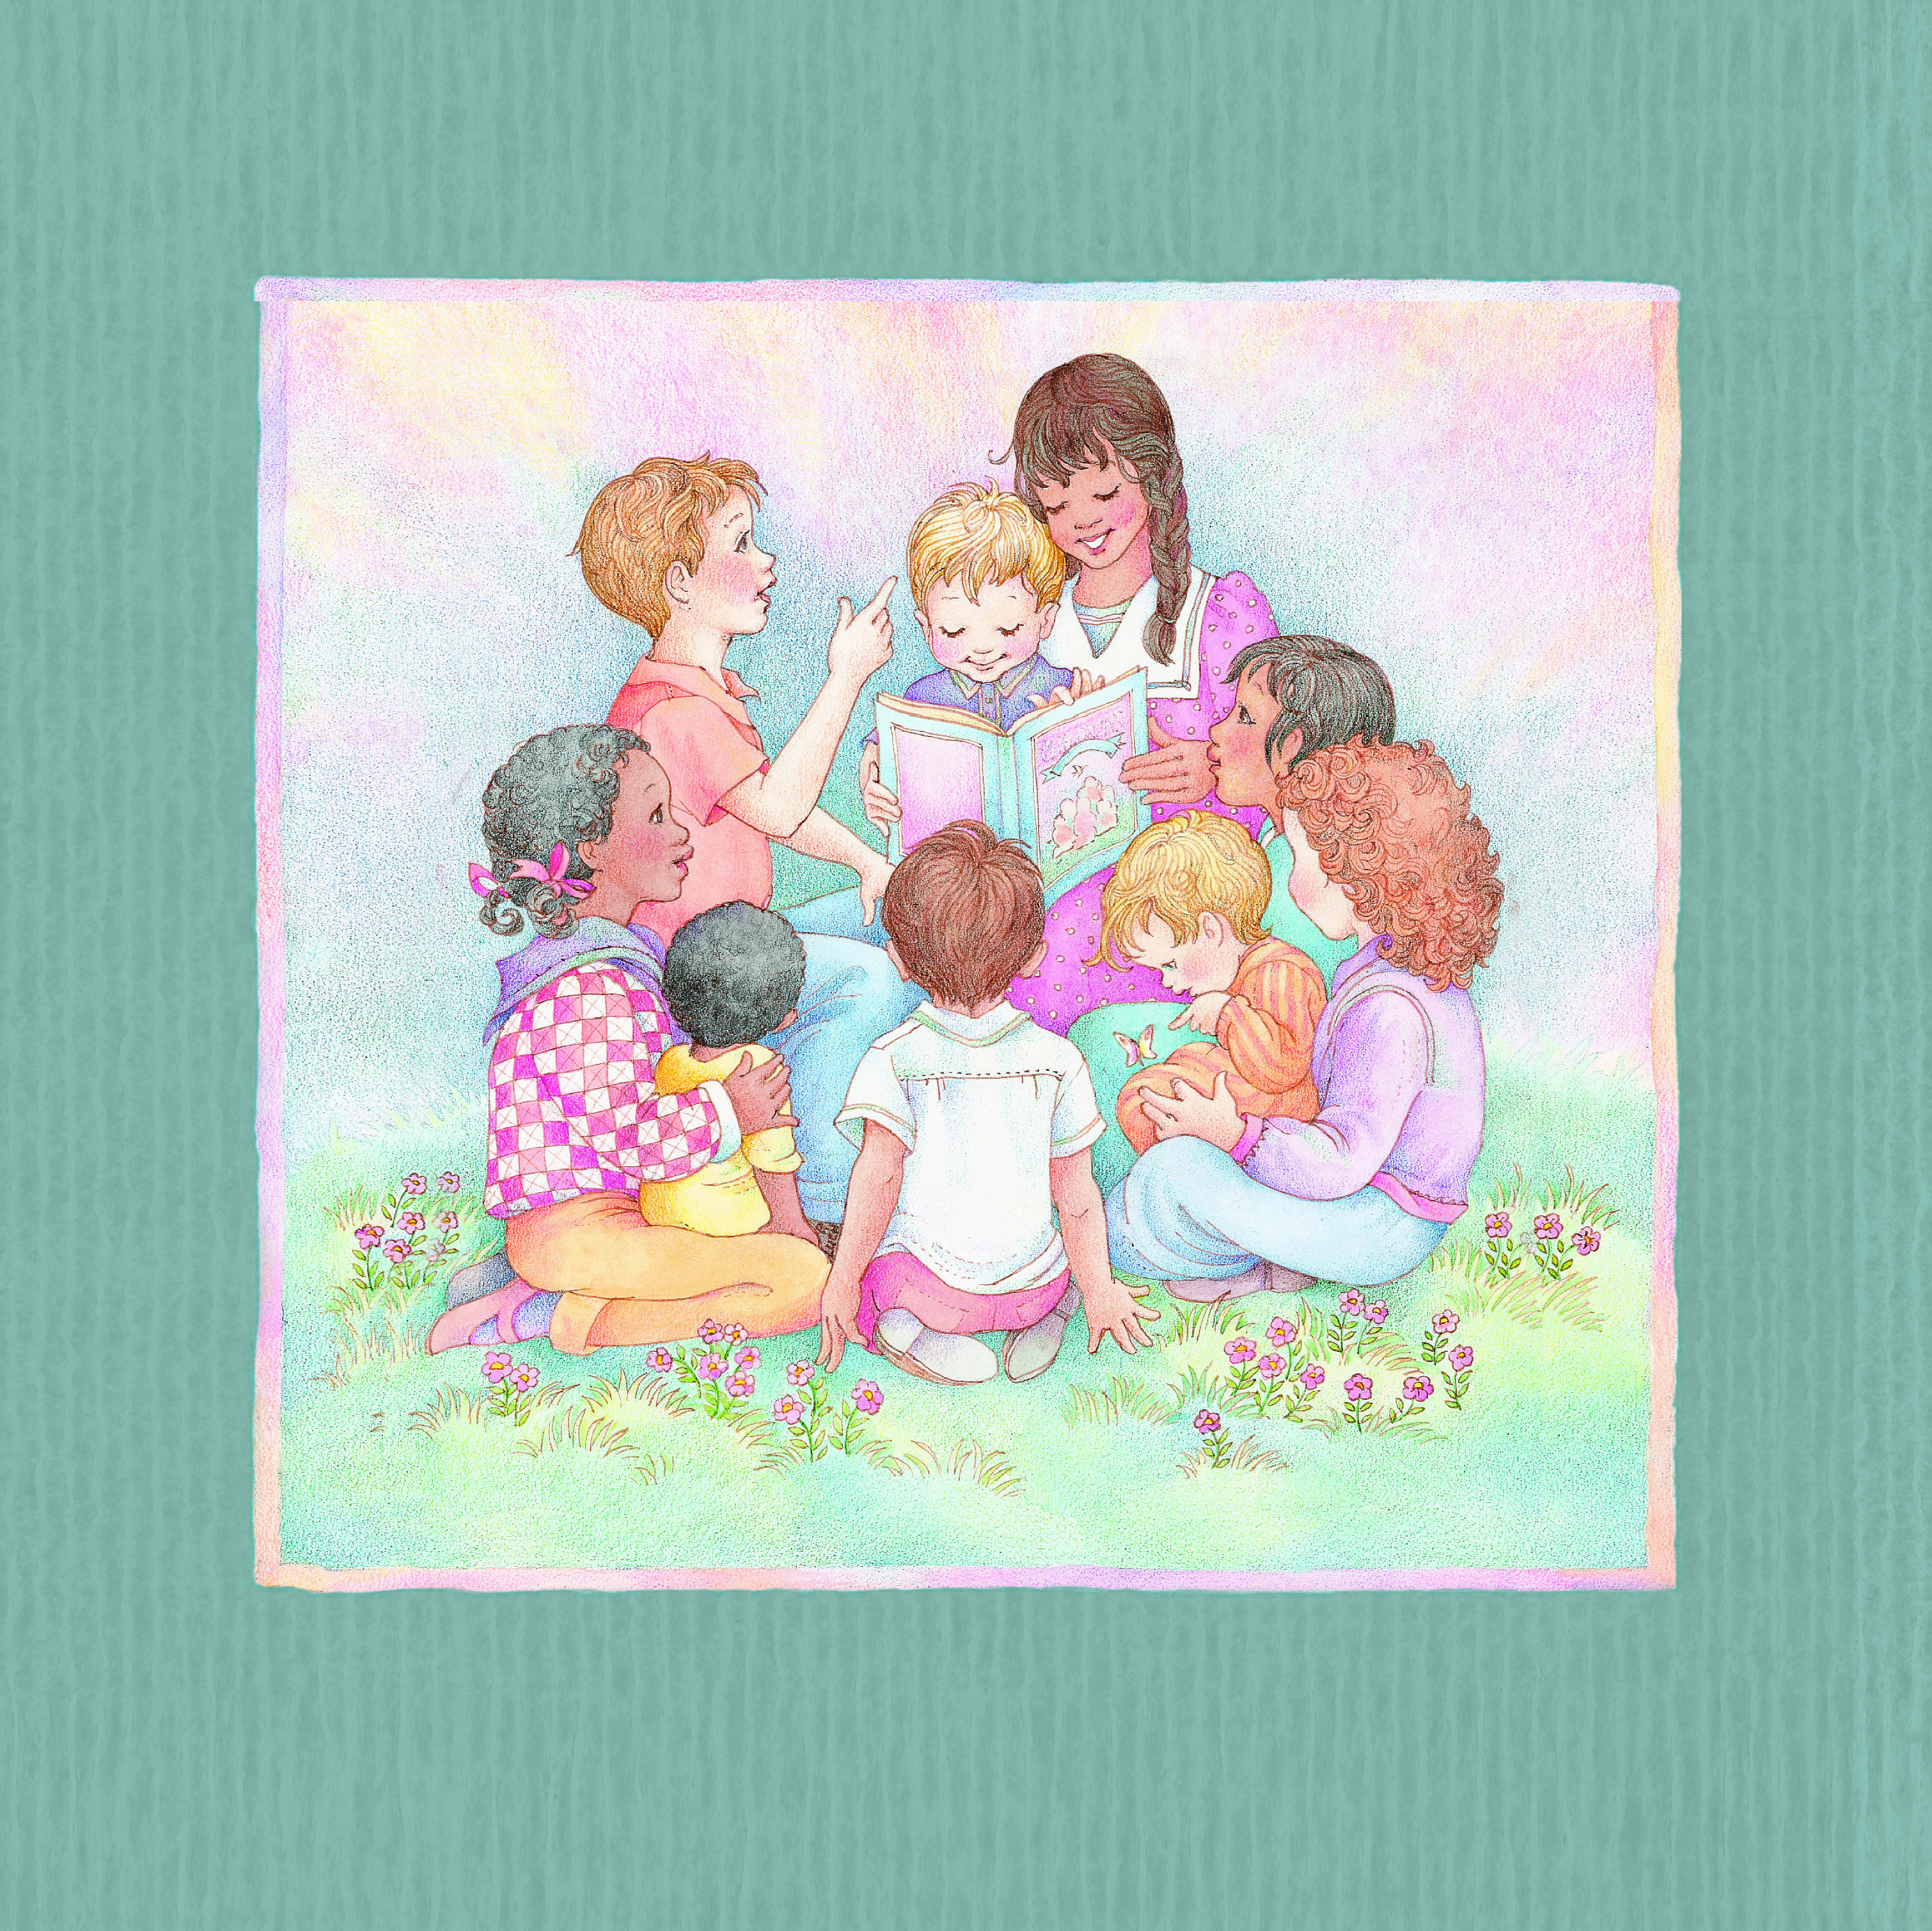 childrens_songbook